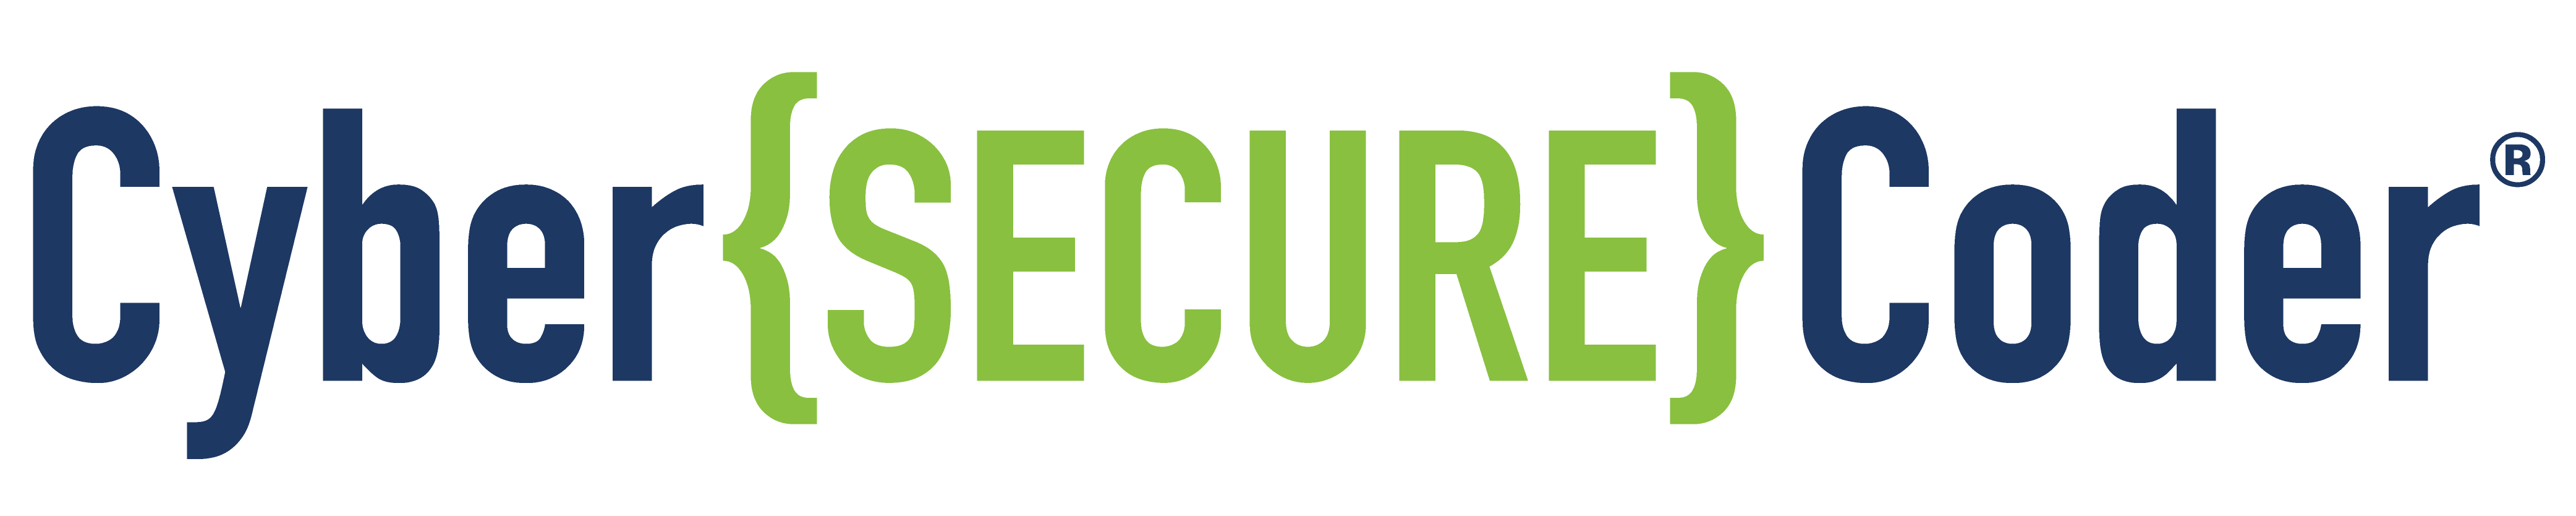 Cyber SECURE Coder